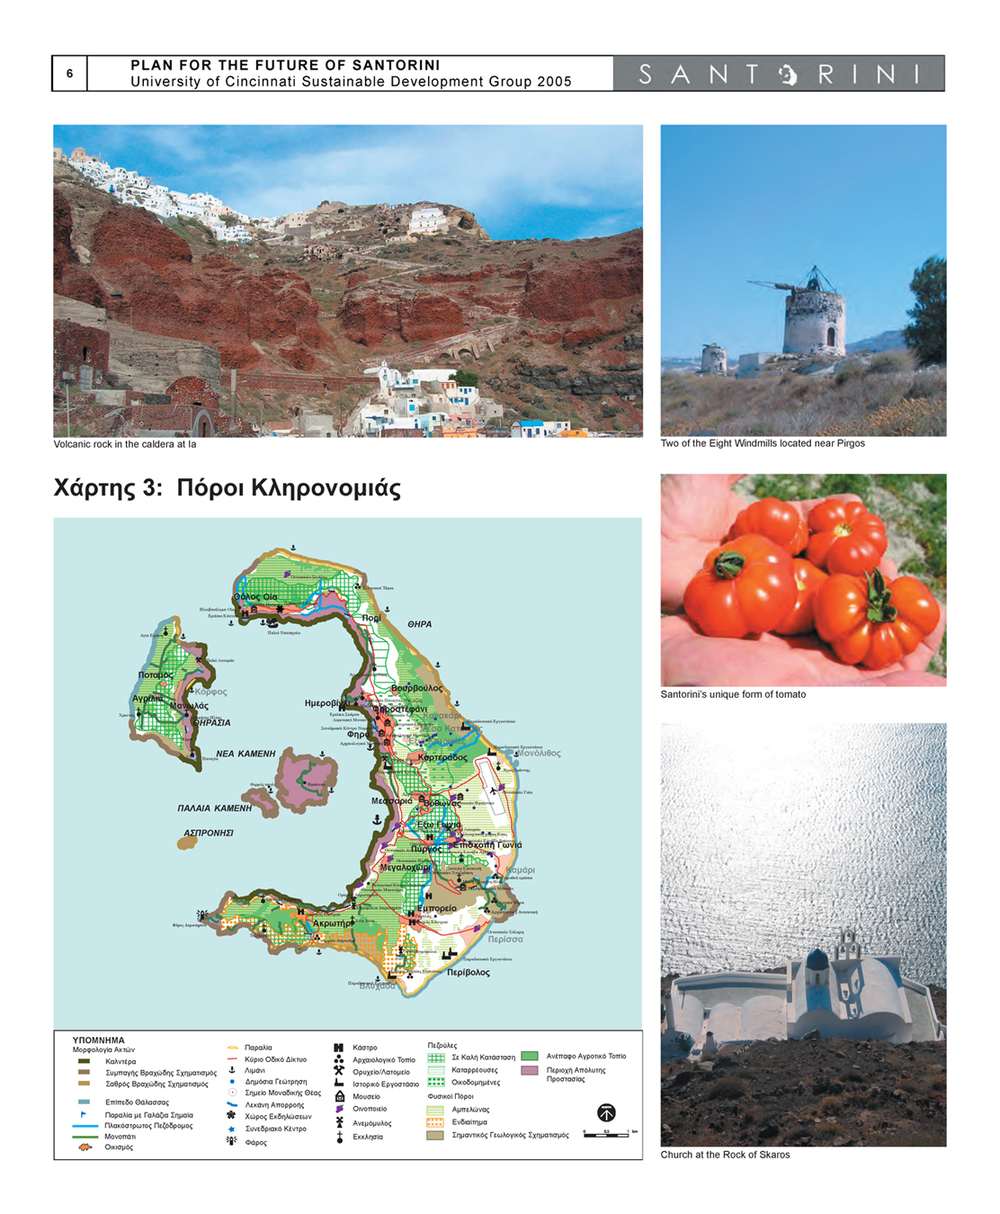 The group of islands known as Santorini possess many assets, such as the stunning cliffs, small scale agriculture, traditional architecture and beautiful waters of the South Aegean Sea.  The Plan for the Future of Santorini is bilingual in Greek and English. Source:  University of Cincinnati Sustainable Development Group.